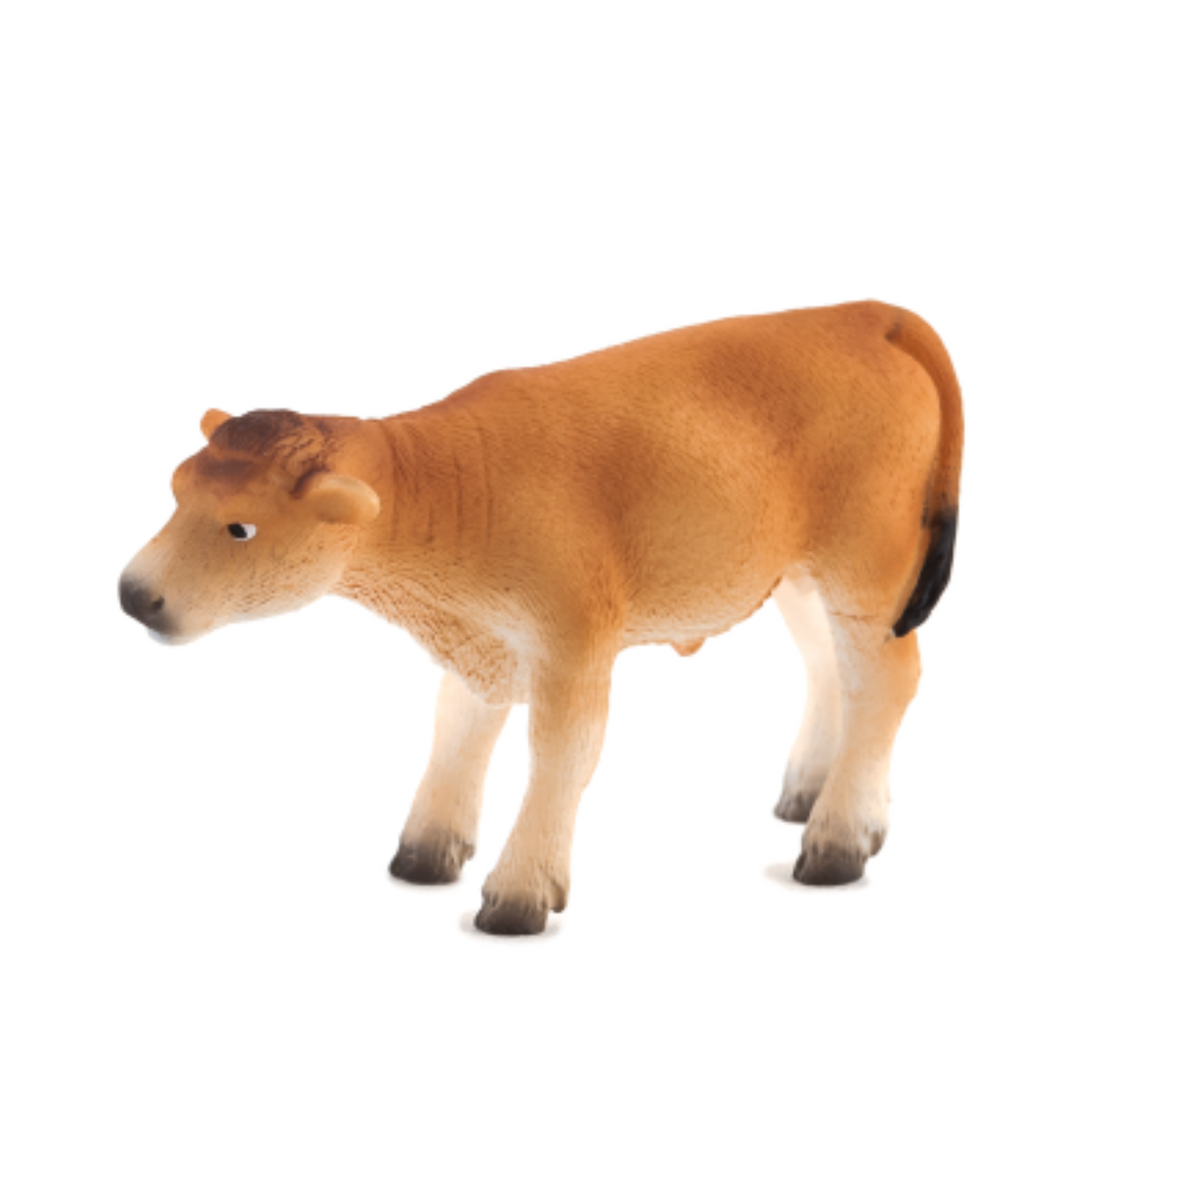 Jersey Calf Standing Animal Planet 387147